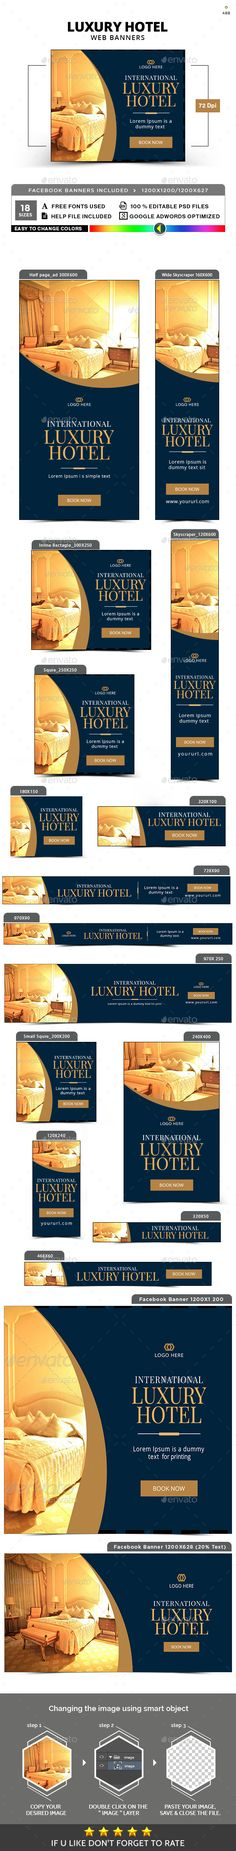 Luxury Hotel Banners Template PSD #promotion #ads